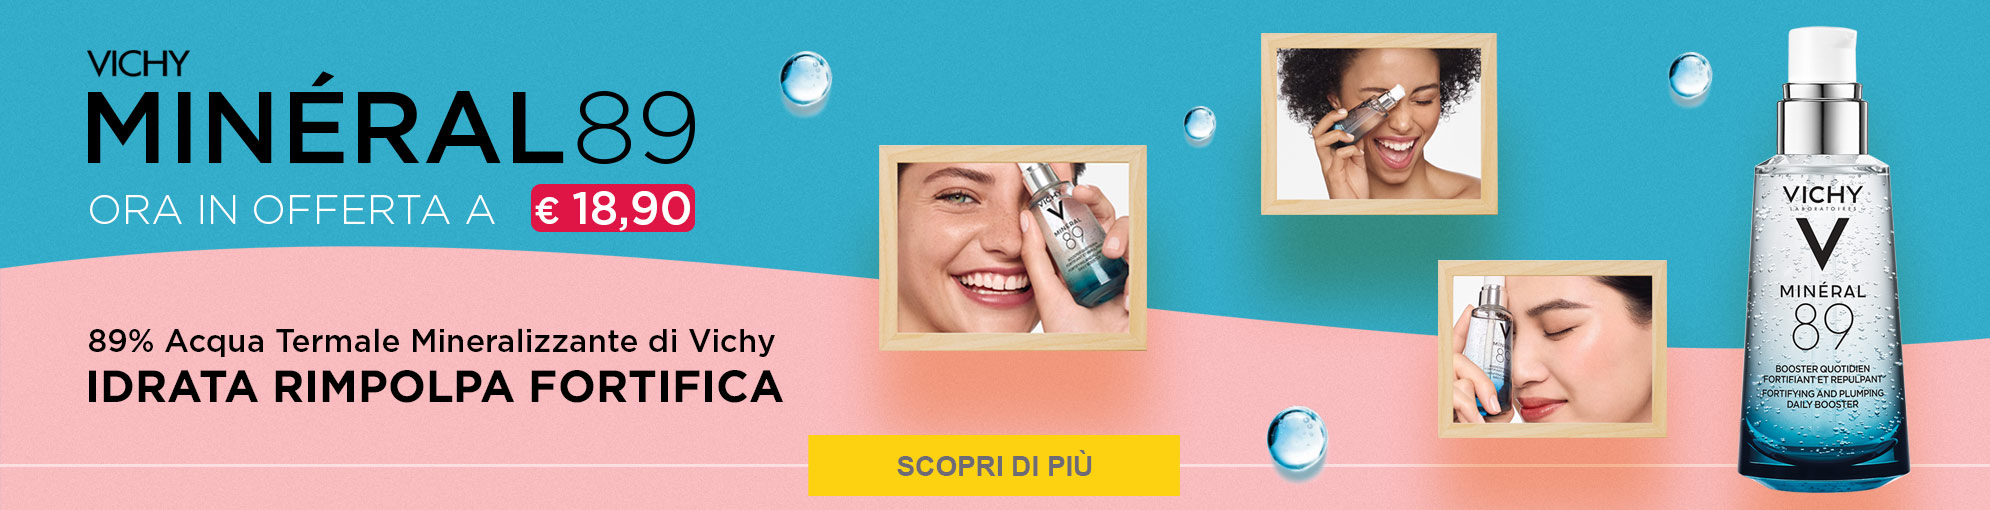 Vichy mineral in super offerta!